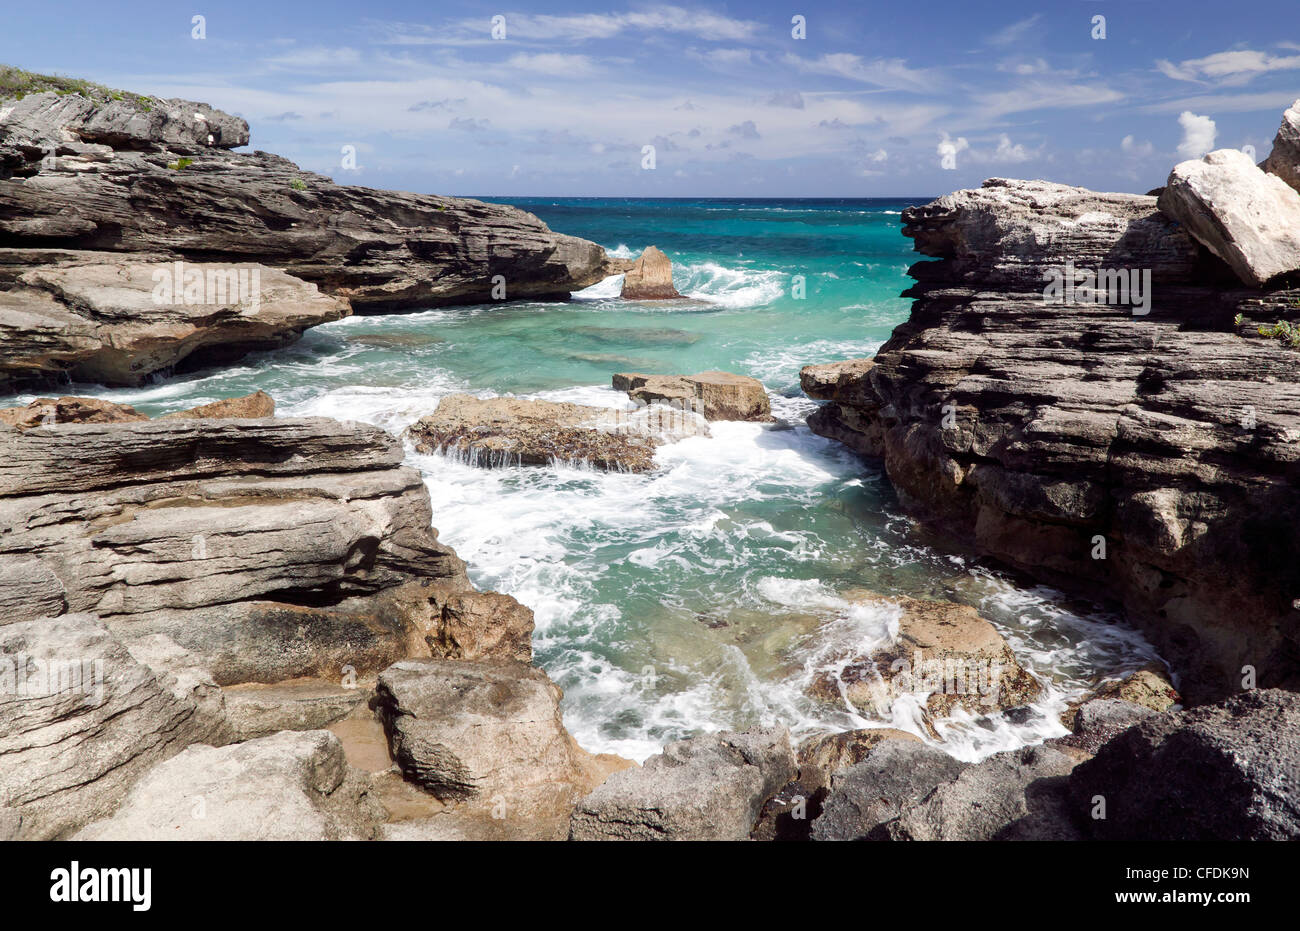 Capture of a coastal section of Spittal Pond Nature Reserve, Smith's Parish, Bermuda - Stock Image